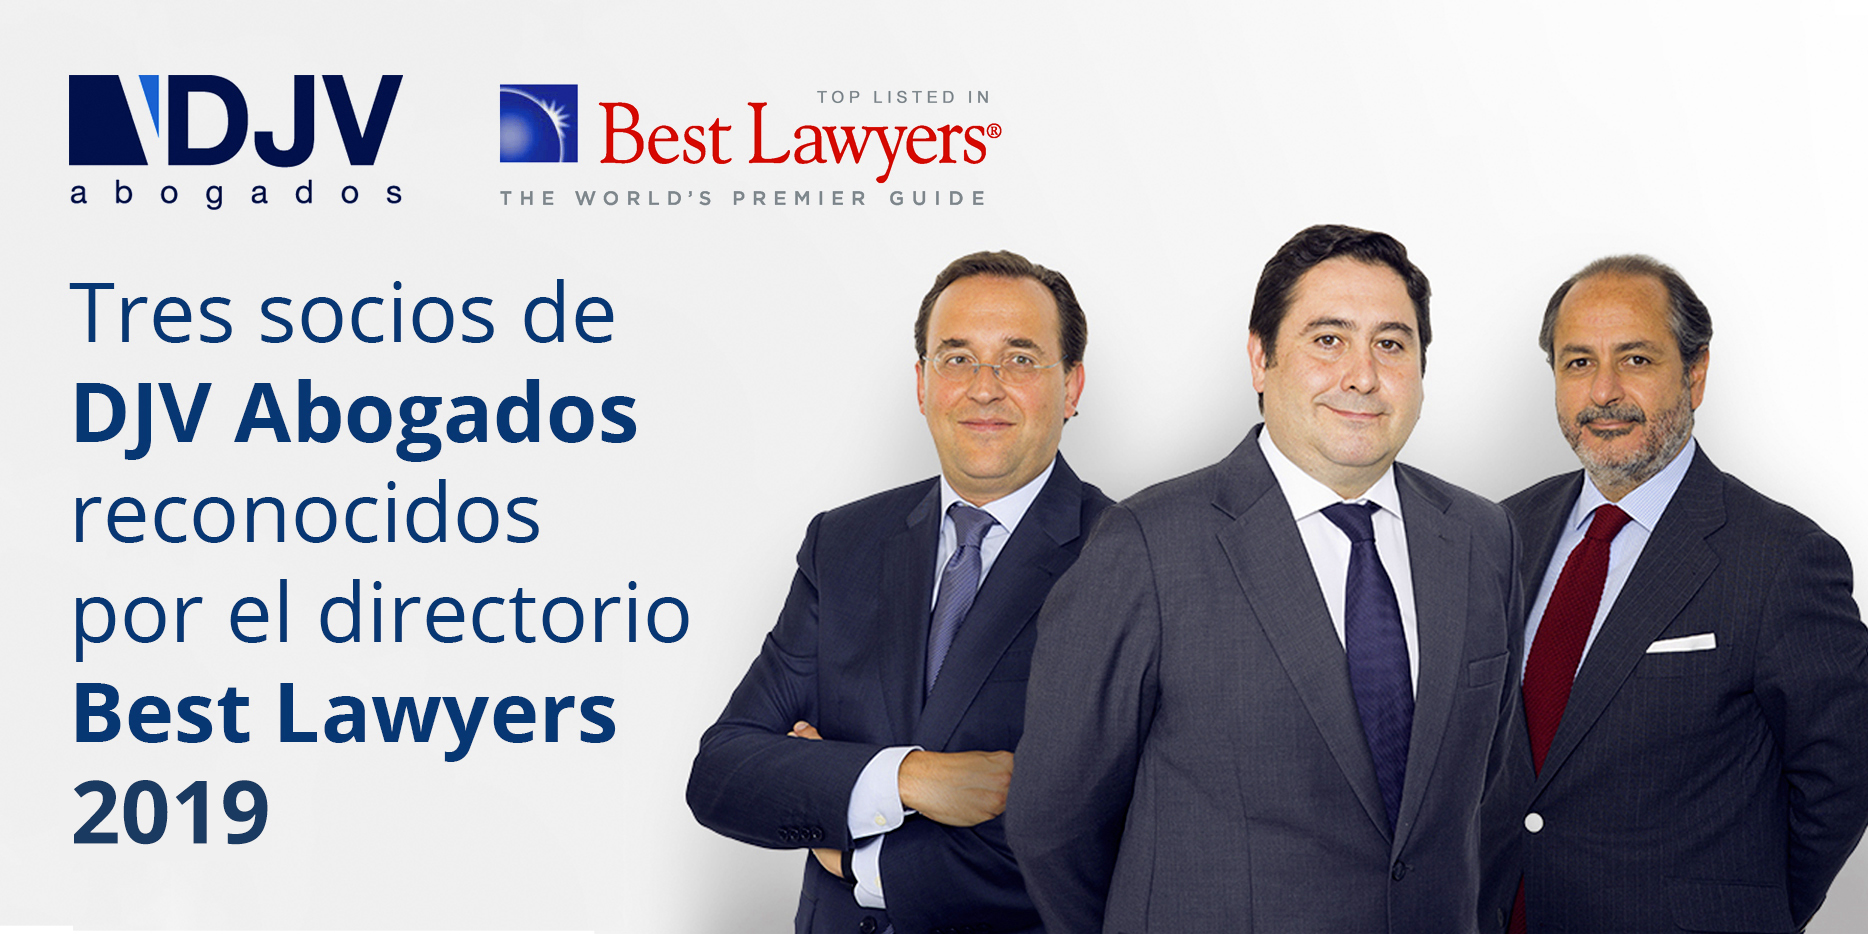 Djv Abogados Best Lawyers